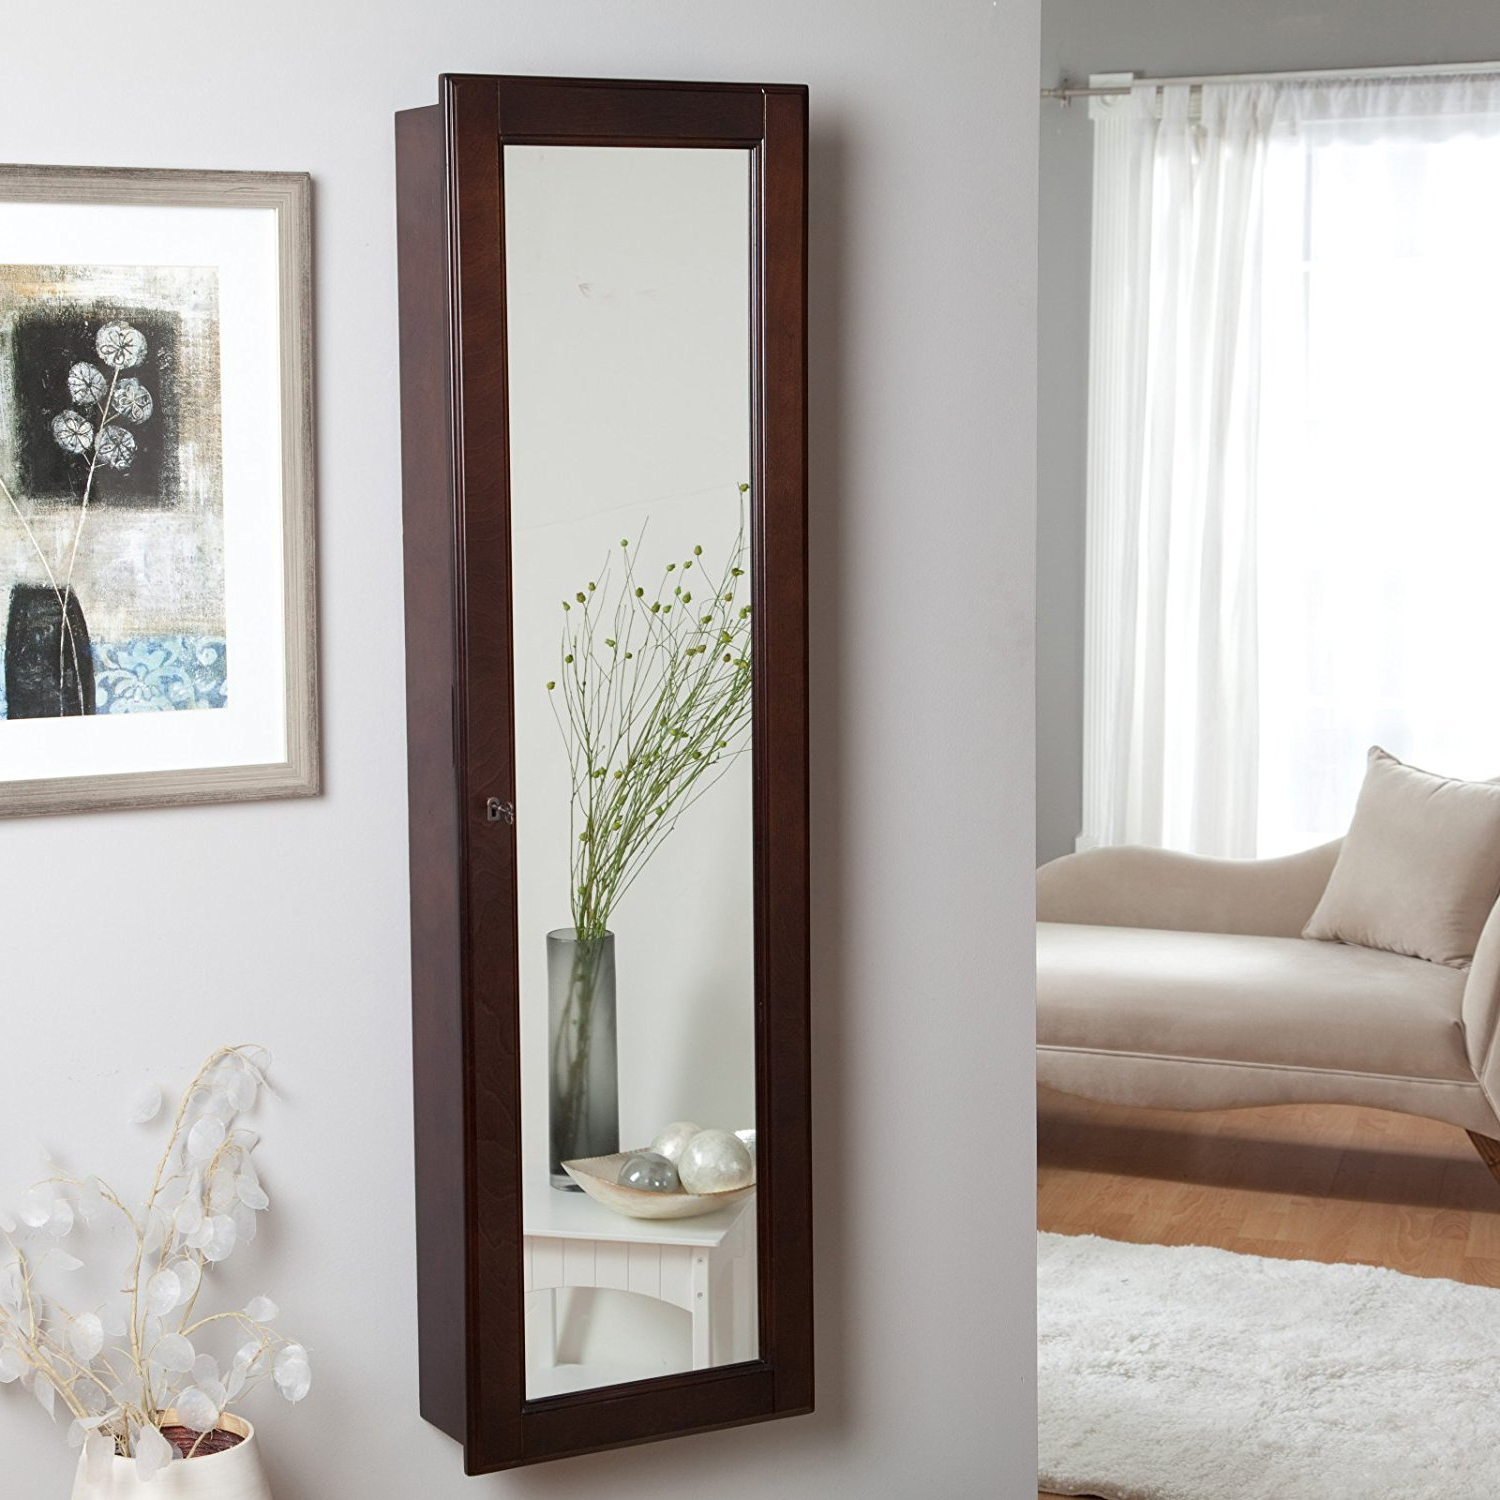 Wall Mirrors With Jewelry Storage Within Favorite Wall Mounted Jewelry Storage Long– Svc2baltics : Great Ideas (View 15 of 20)